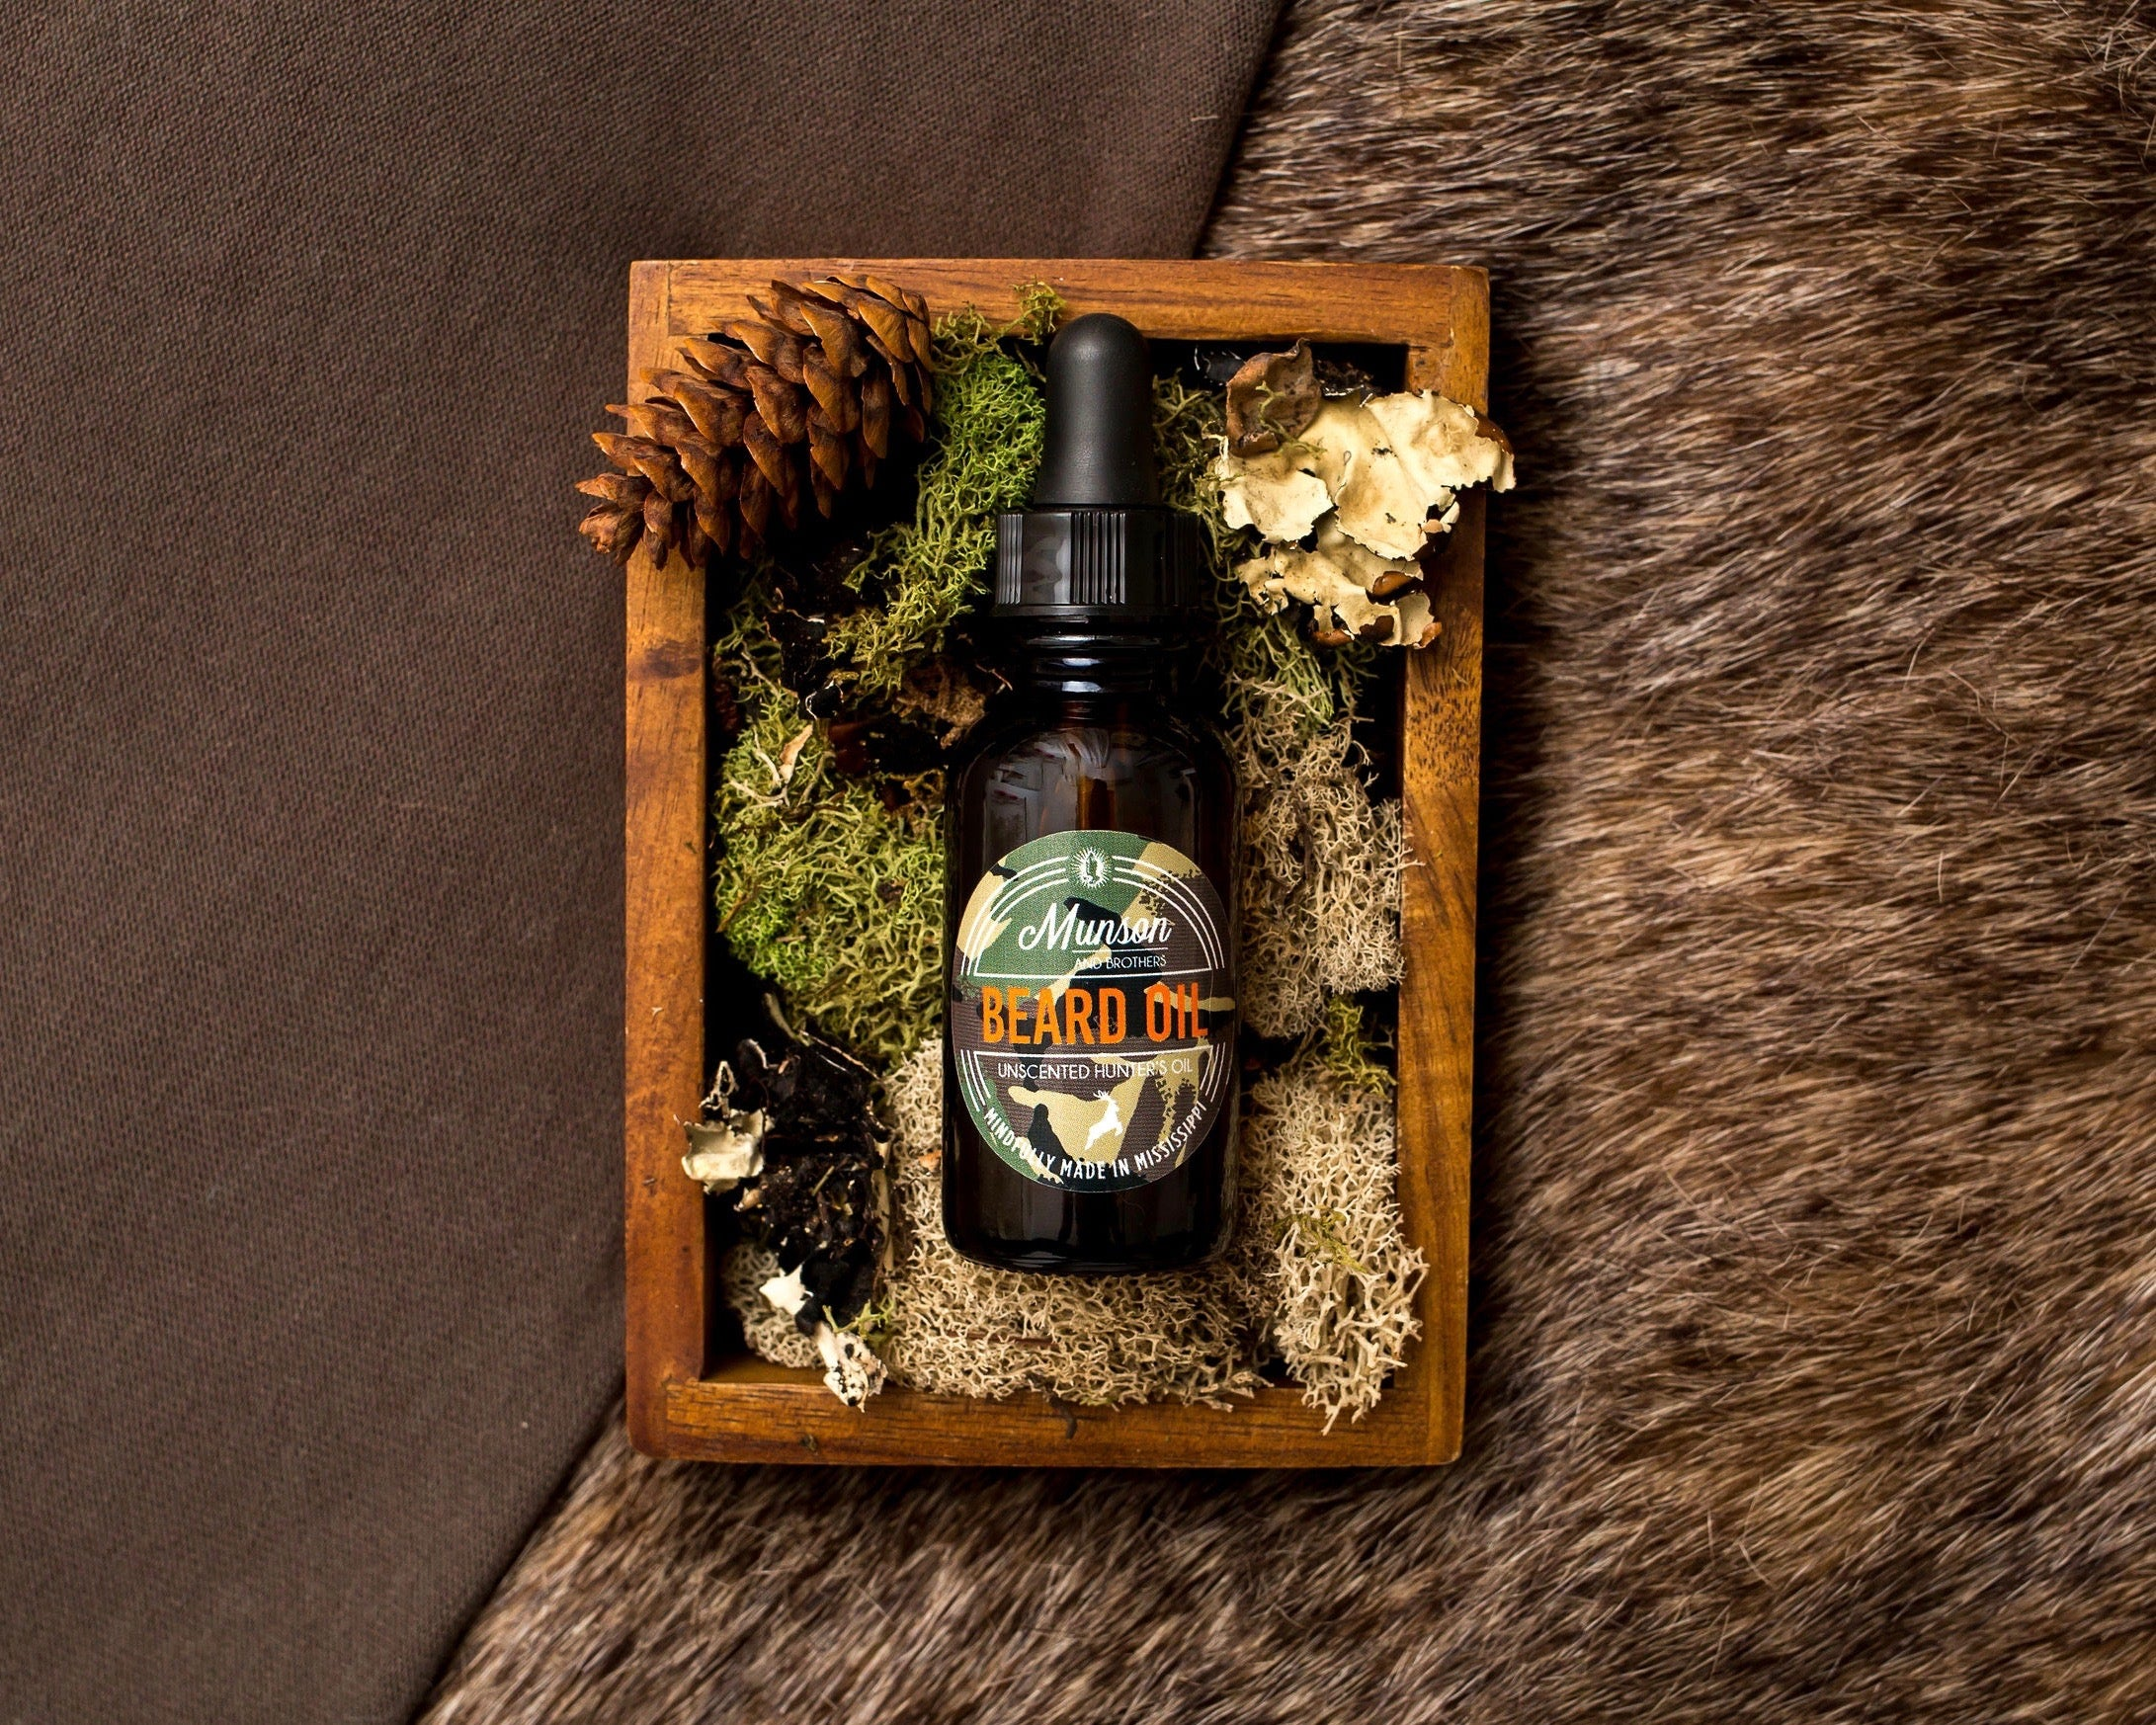 Hunter's Beard Oil